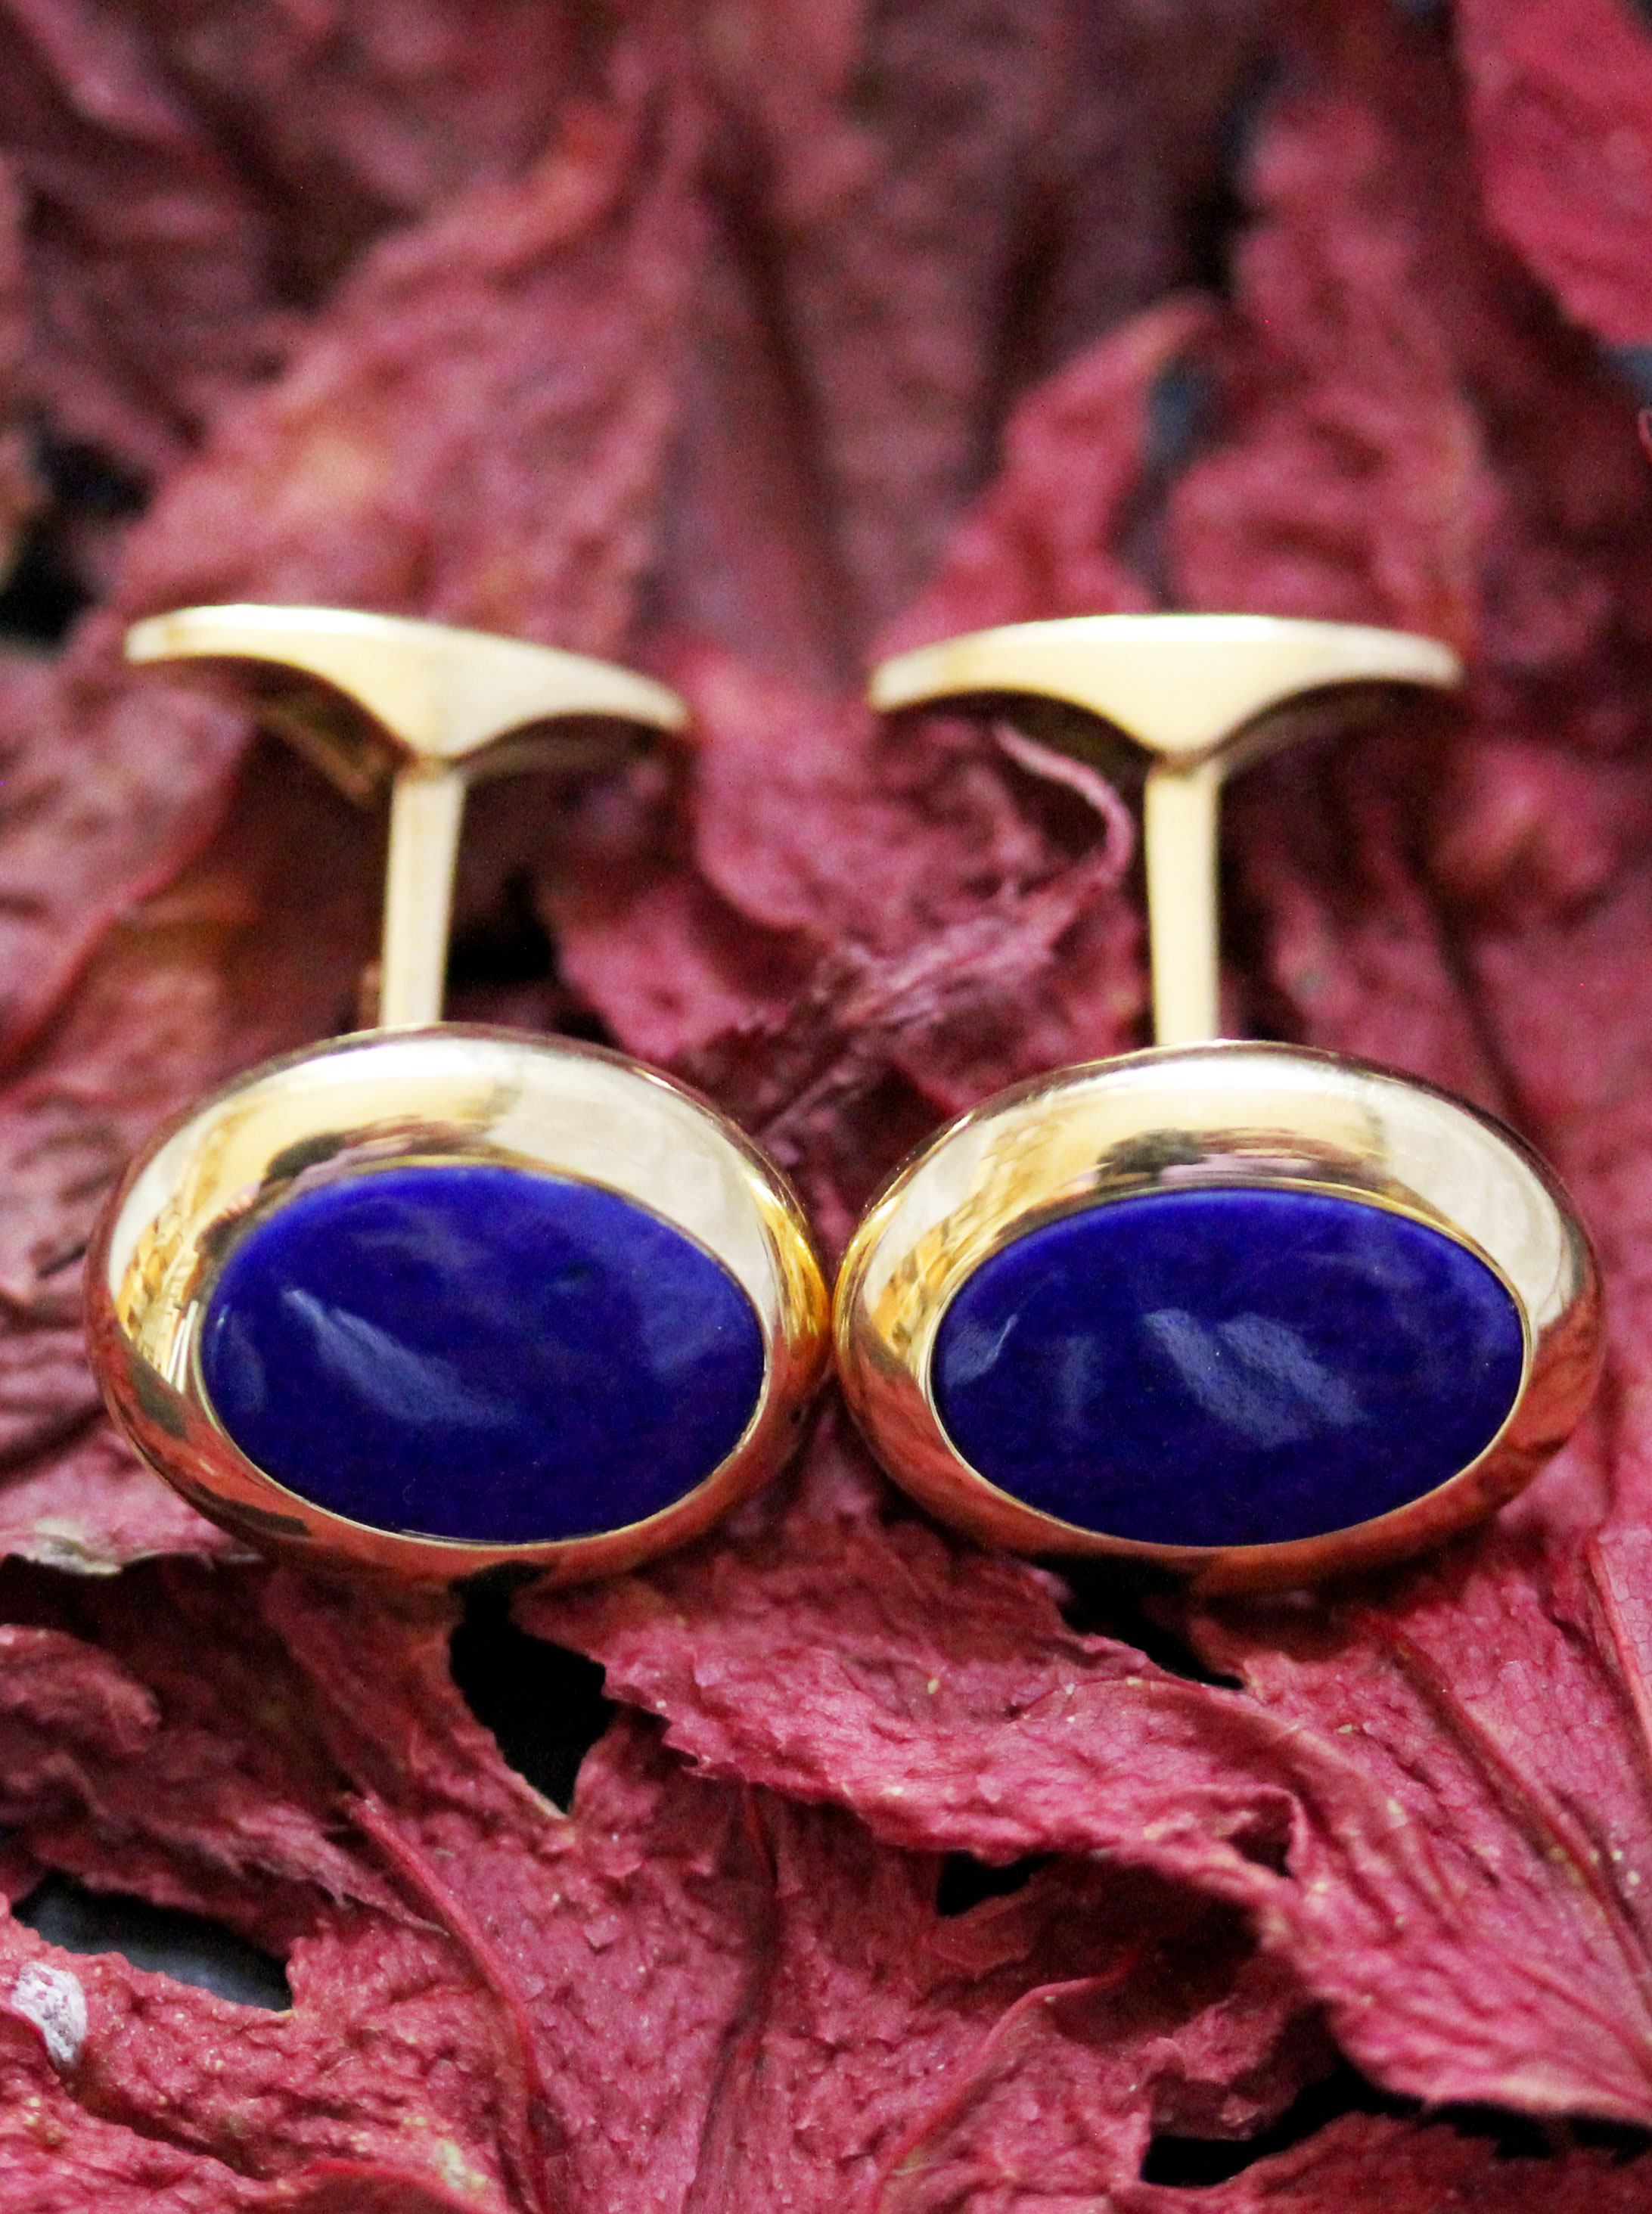 Gold cufflinks with lapis lazuli made by WEMPE